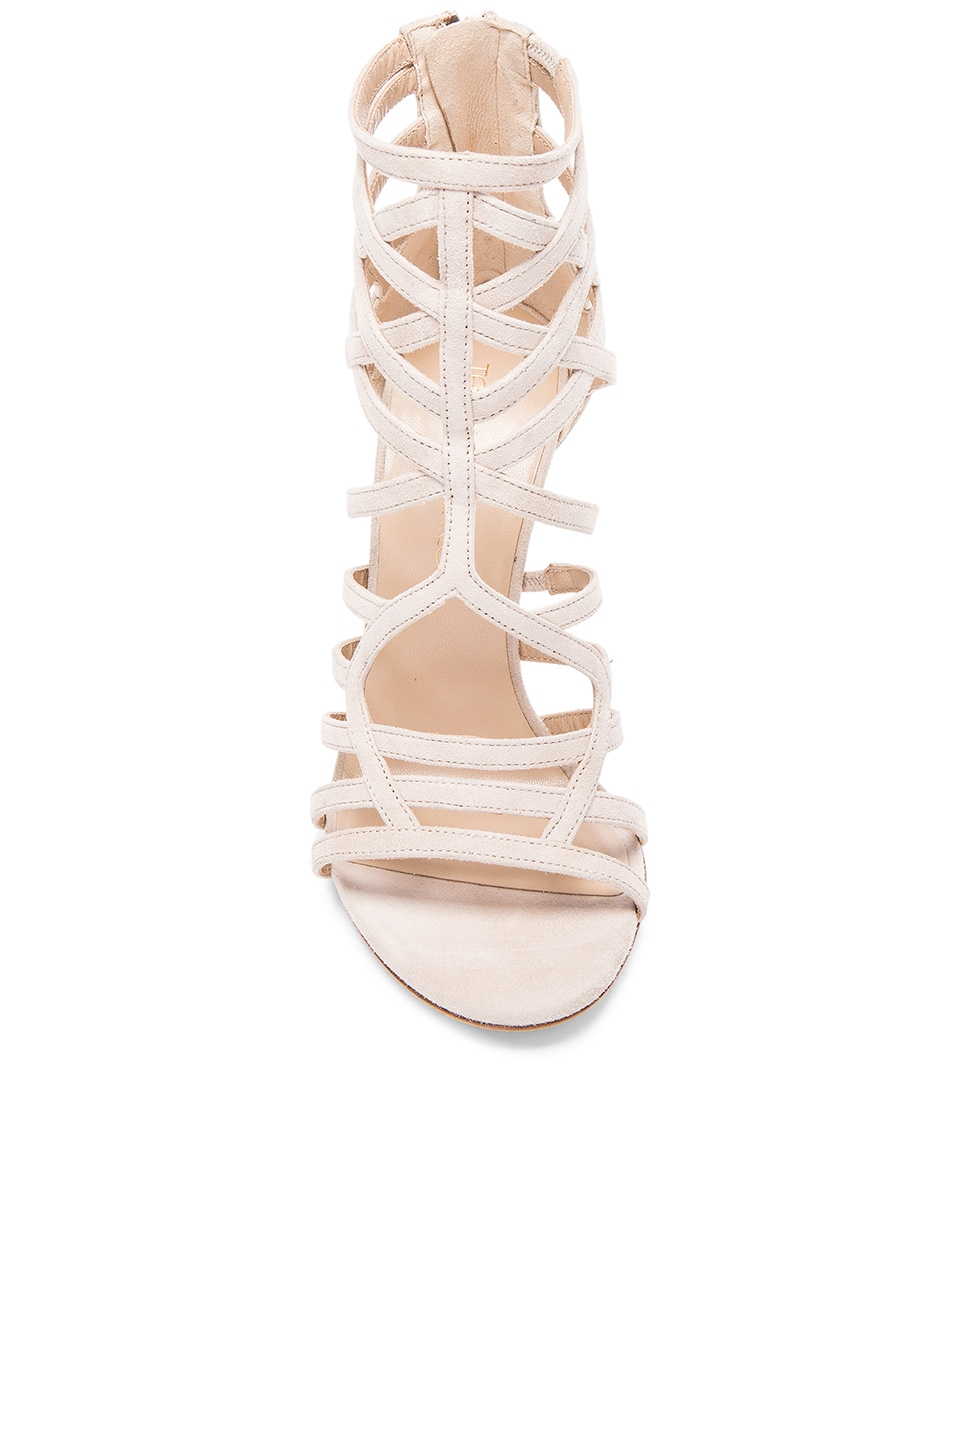 Image 4 of Tamara Mellon Goddess Nappa & Suede Sandals in Nude